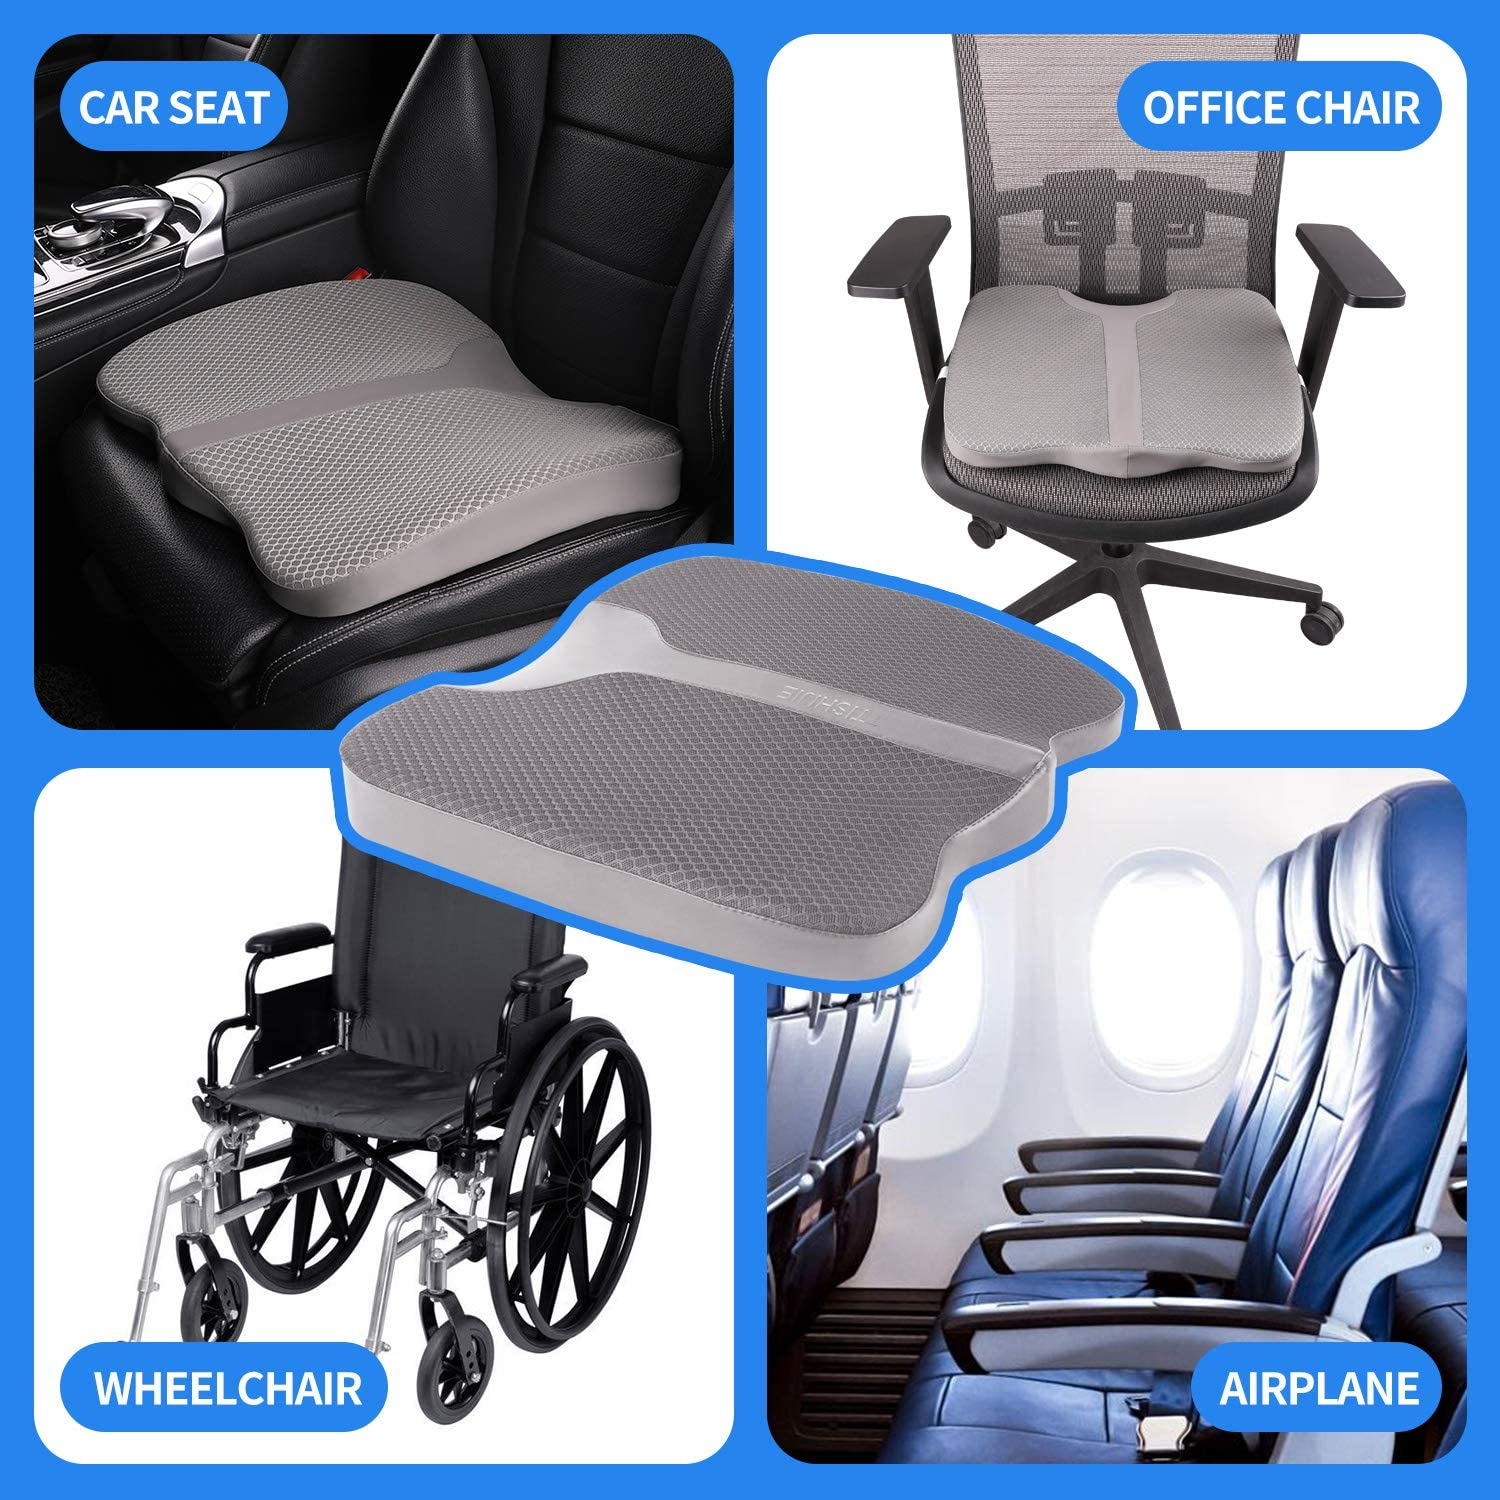 Black Hips TISHIJIE Memory Foam Wedge Car Booster Seat Cushion and Tailbone Pain for Cars Front Seat Relief Back Pain Office Chair and More.